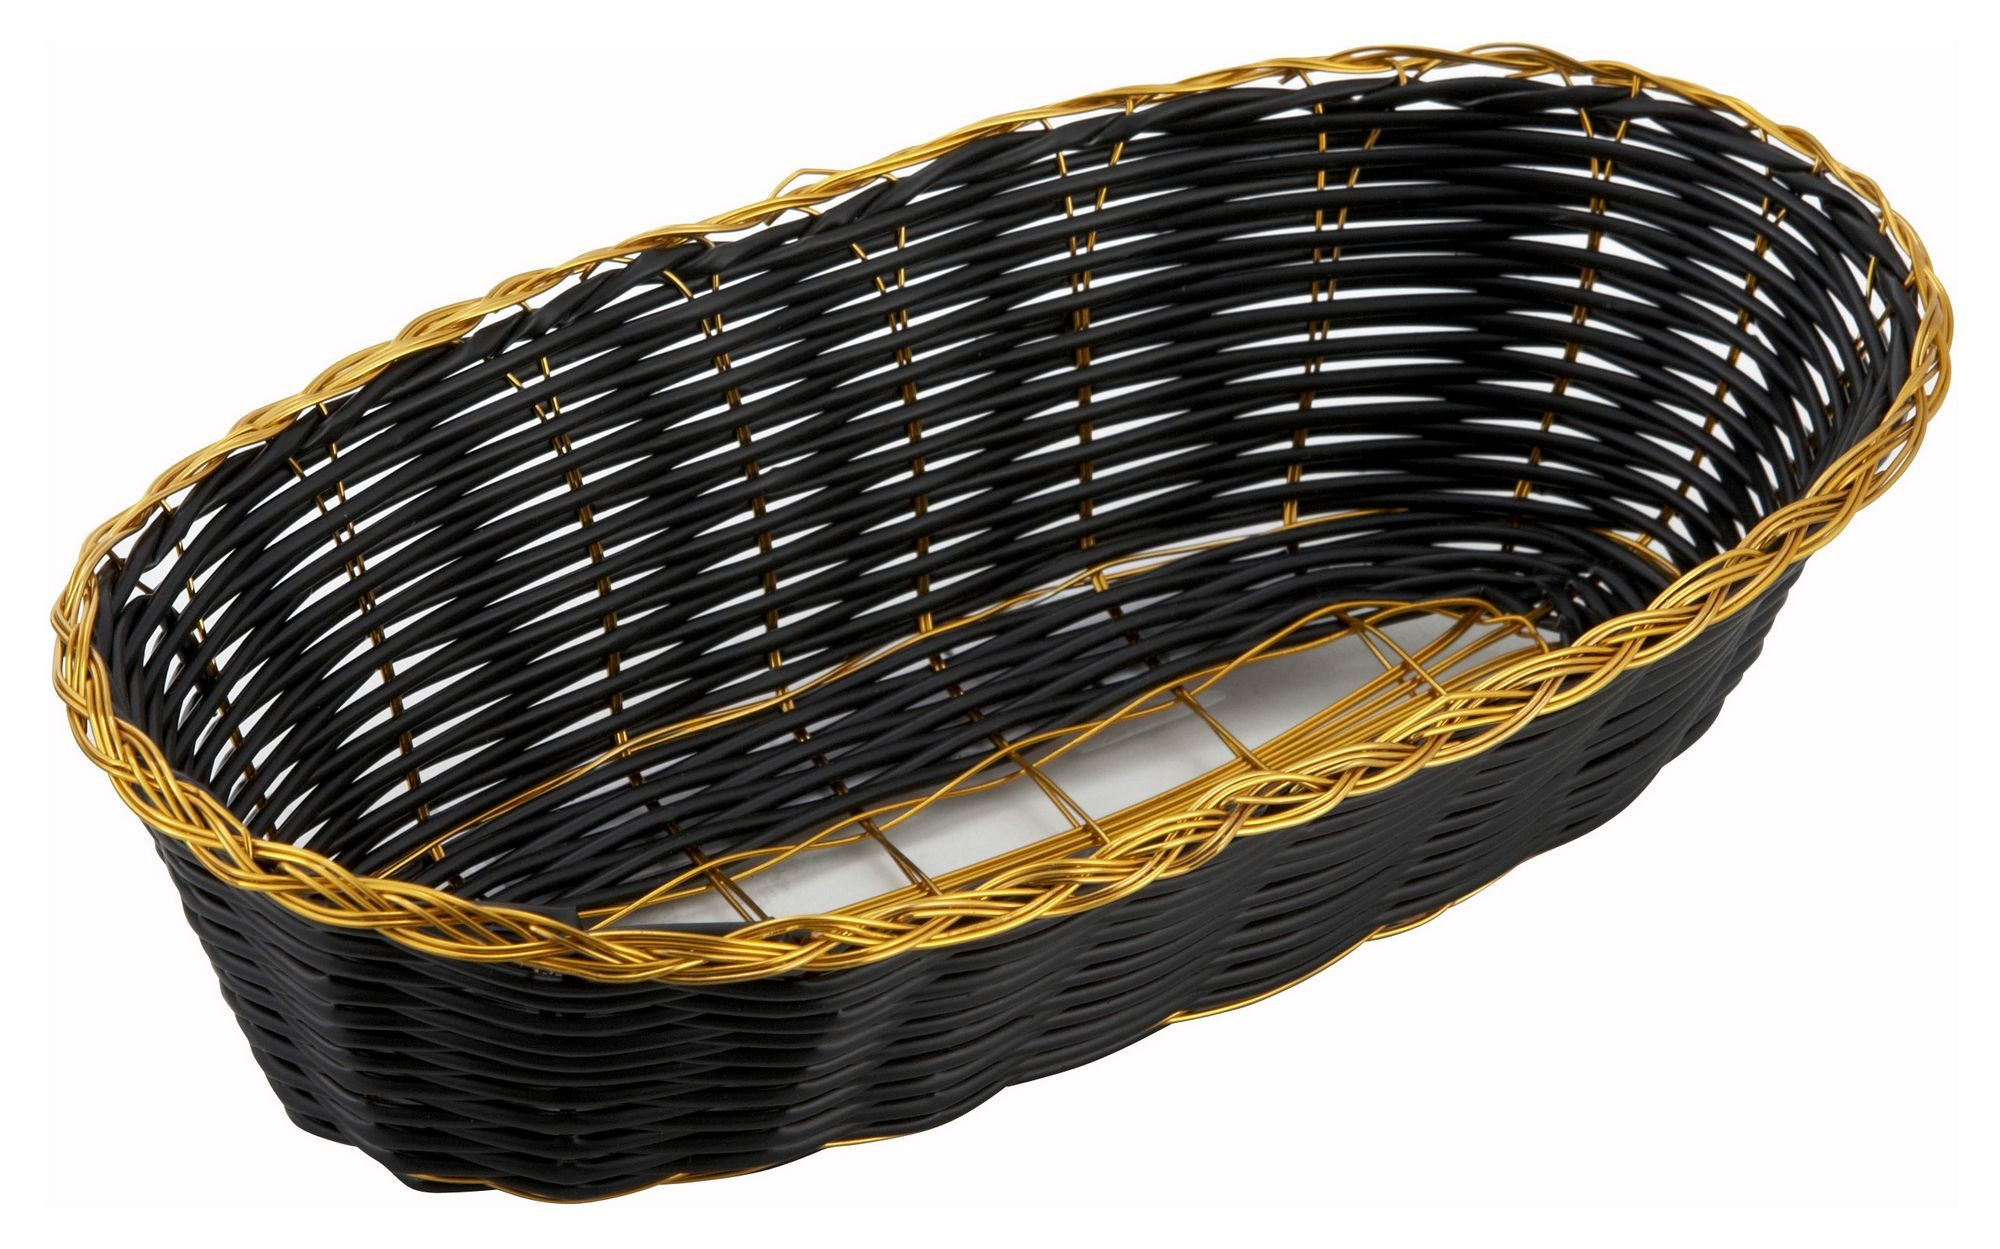 "Winco PWBK-9B Oblong Black Poly Woven Basket and Gold Trim 9"" x 6-1/2"" by 2-1/4"""